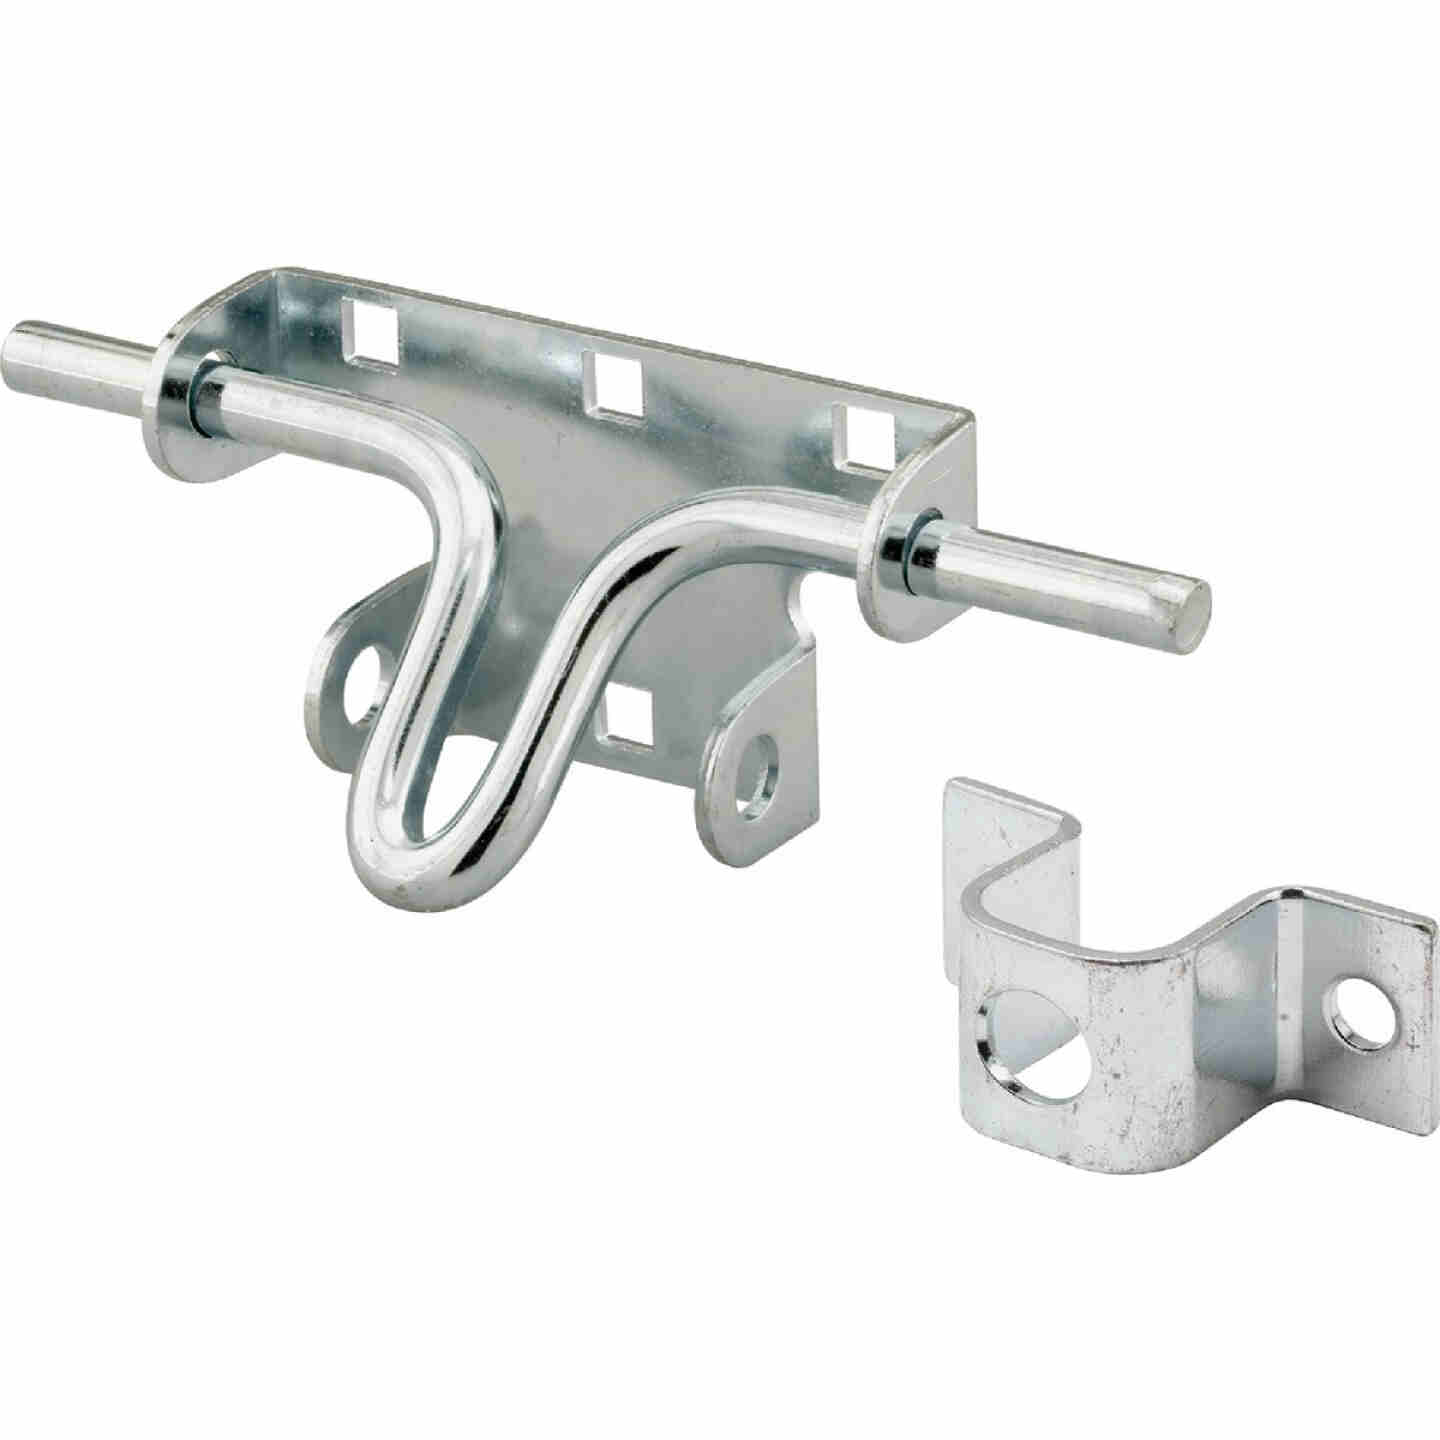 Prime-Line Zinc Plated Steel Slide Bolt Latch Image 1